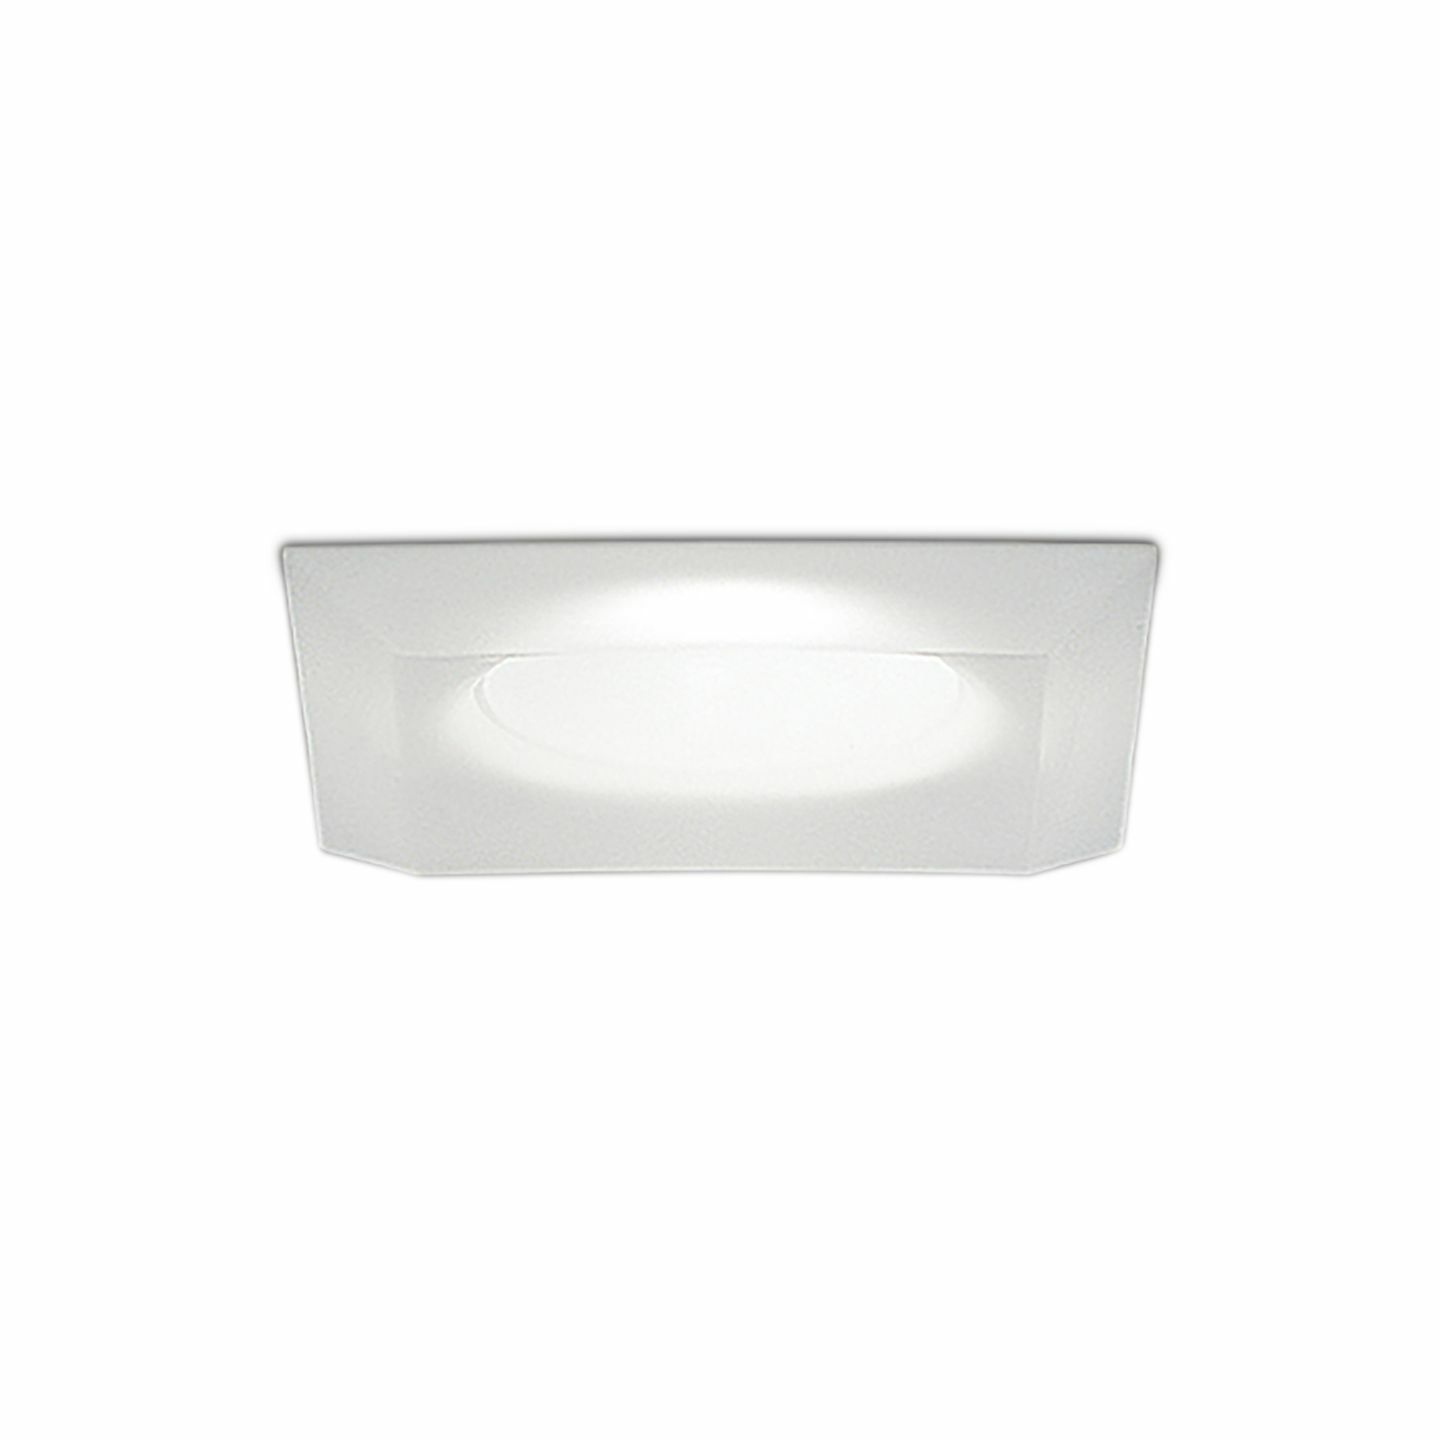 Mira 2 LED 0-10V I.C Recessed Housing Finish: Satin White, Construction Type: New Construction, Bulb Type: LED (16W-4000K)